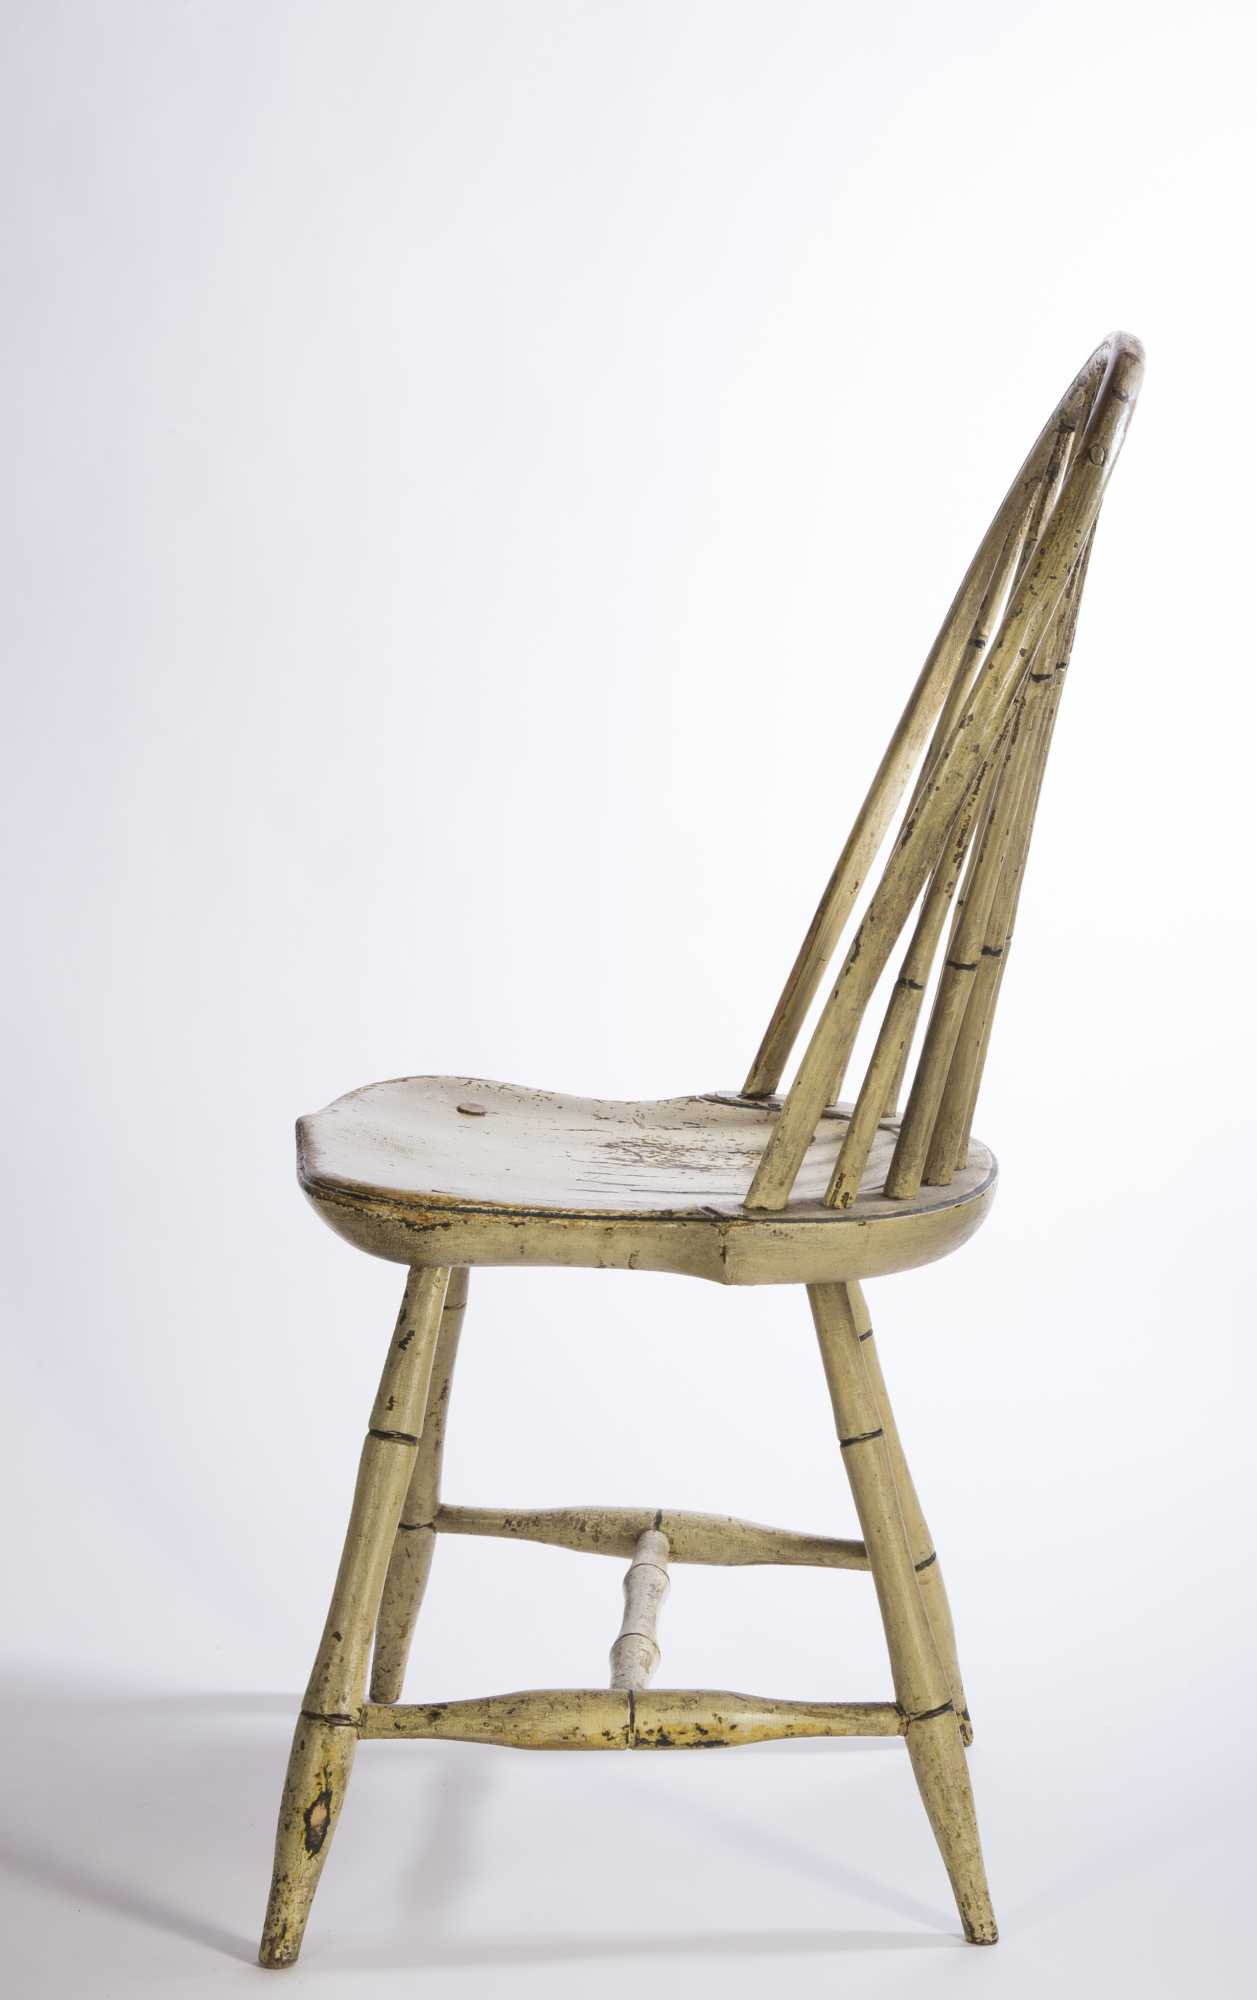 Painted Windsor Chairs - Two white painted windsor chairs